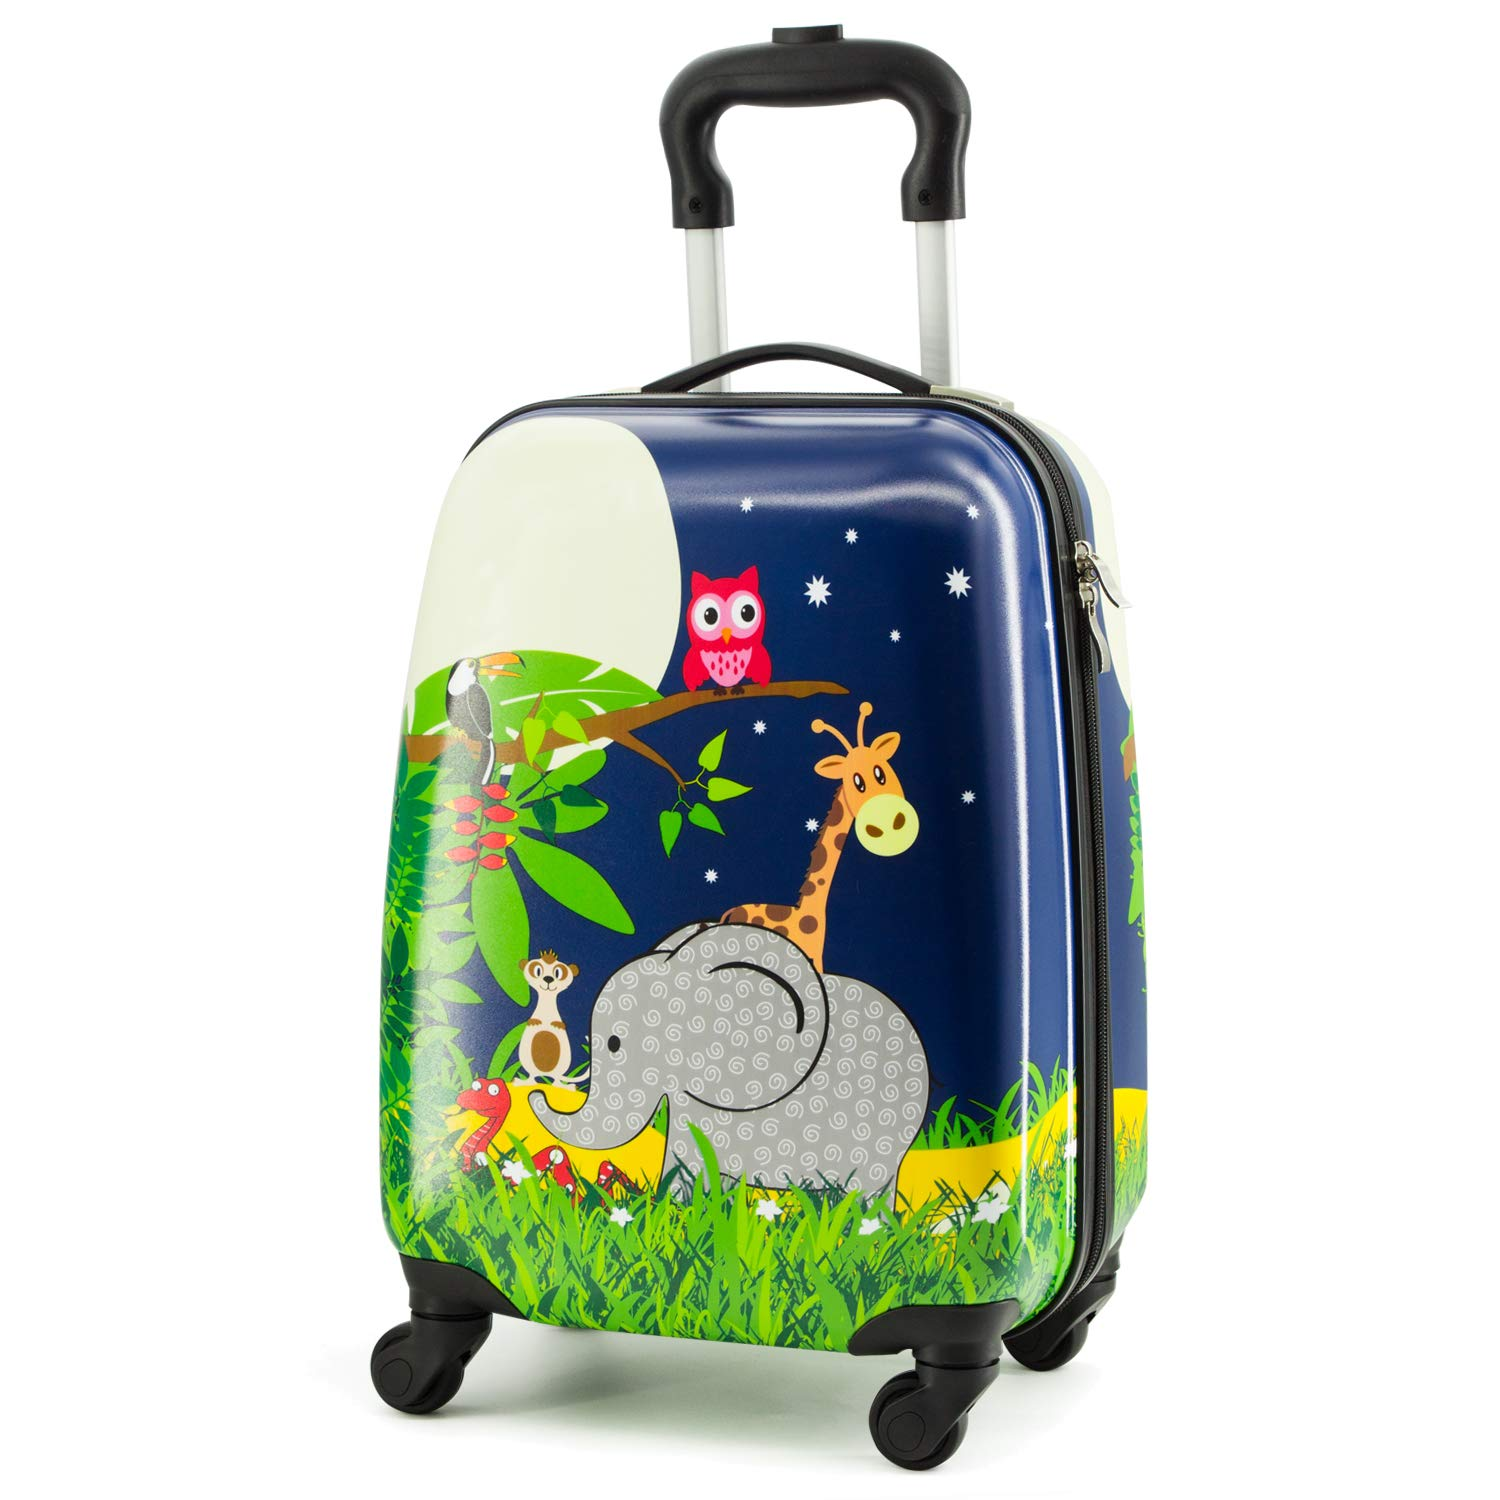 5e301dda7766 Lttxin cute kids suitcase pull along travelling luggage with 4 wheel hard  shell 18 inch for boys (elephant)